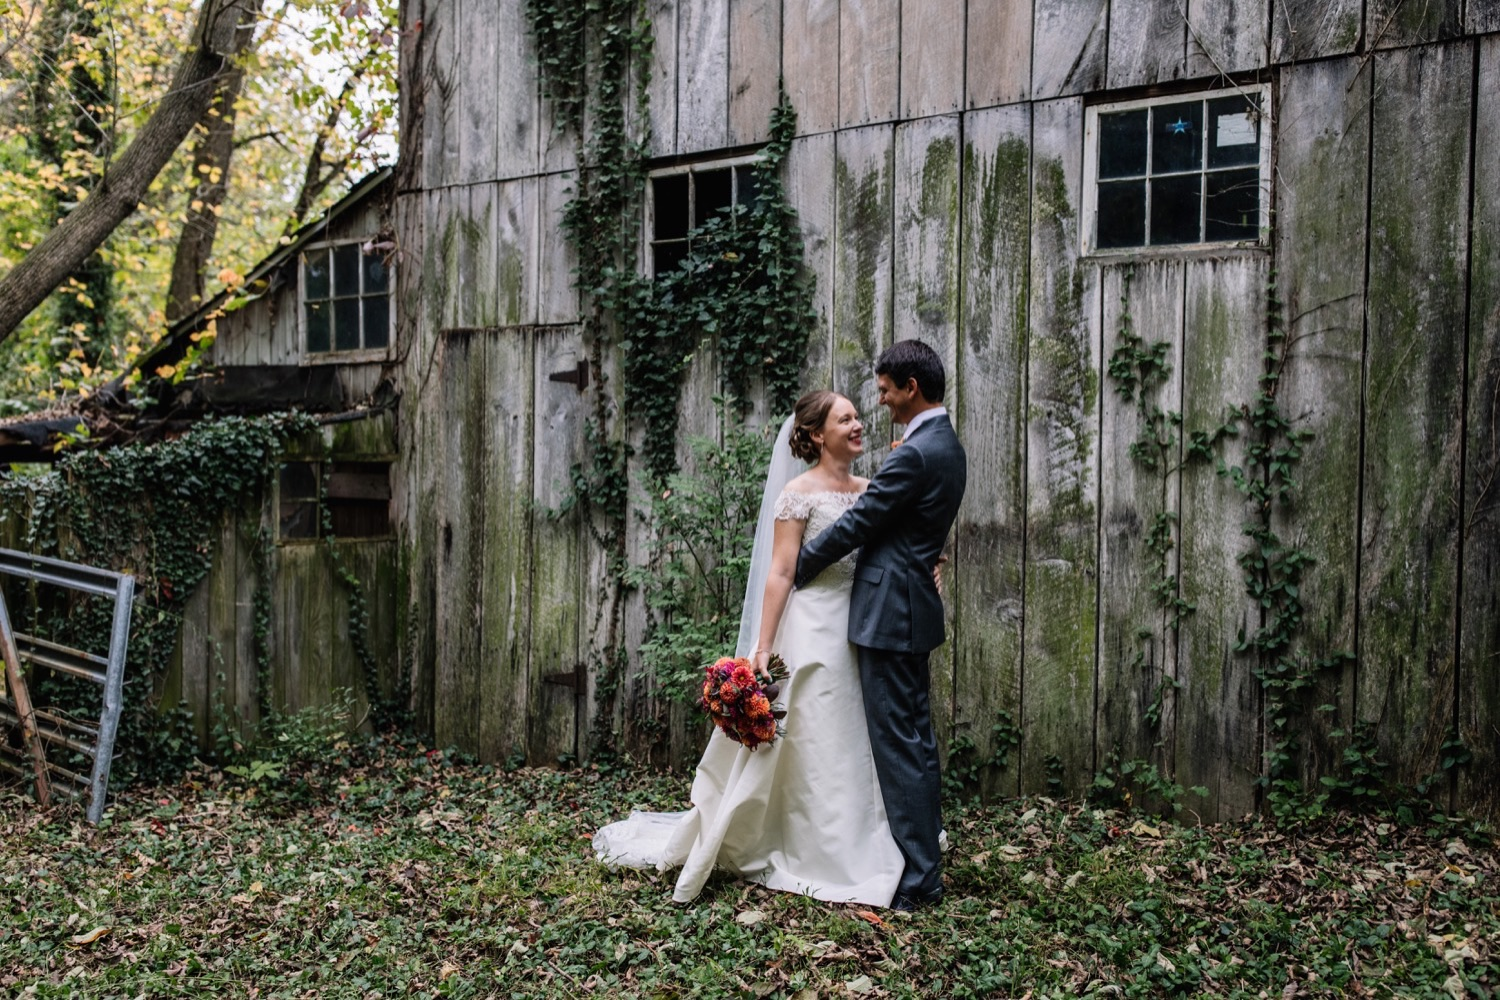 Backyard Farm Wedding - Autumn in Pennsylvania